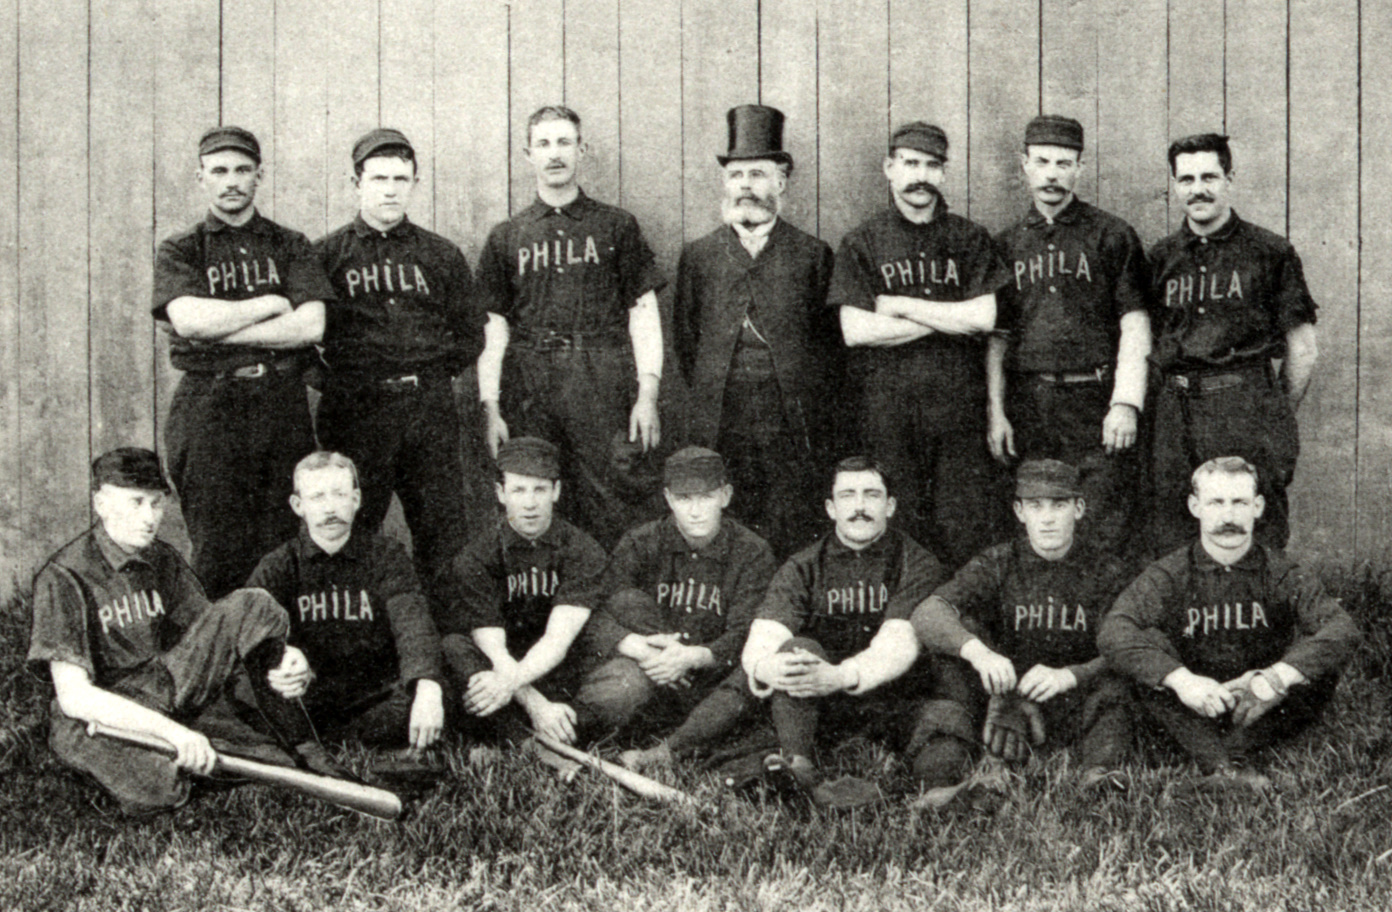 philadelphia quakers - teams who changed names not cities